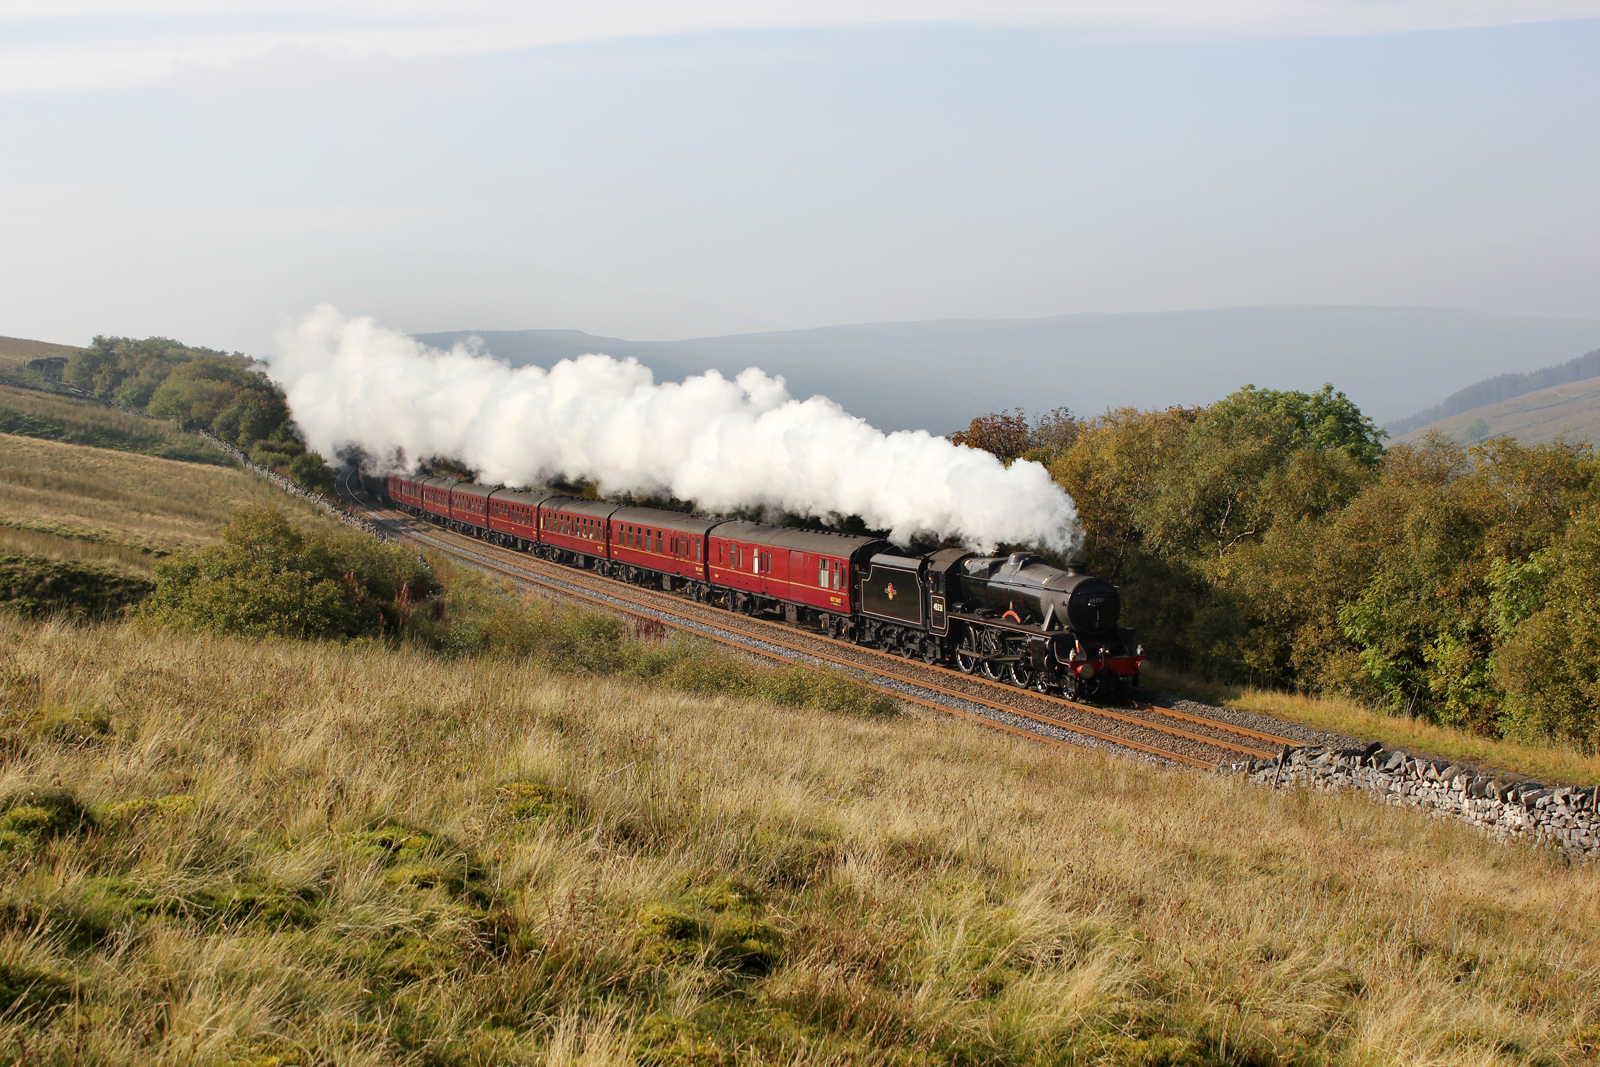 Black Five No.45231 heads a West Coast Railways excursion originating from Cleethorpes along the upper side of Garsdale, before plunging into the fog filled Eden Valley.